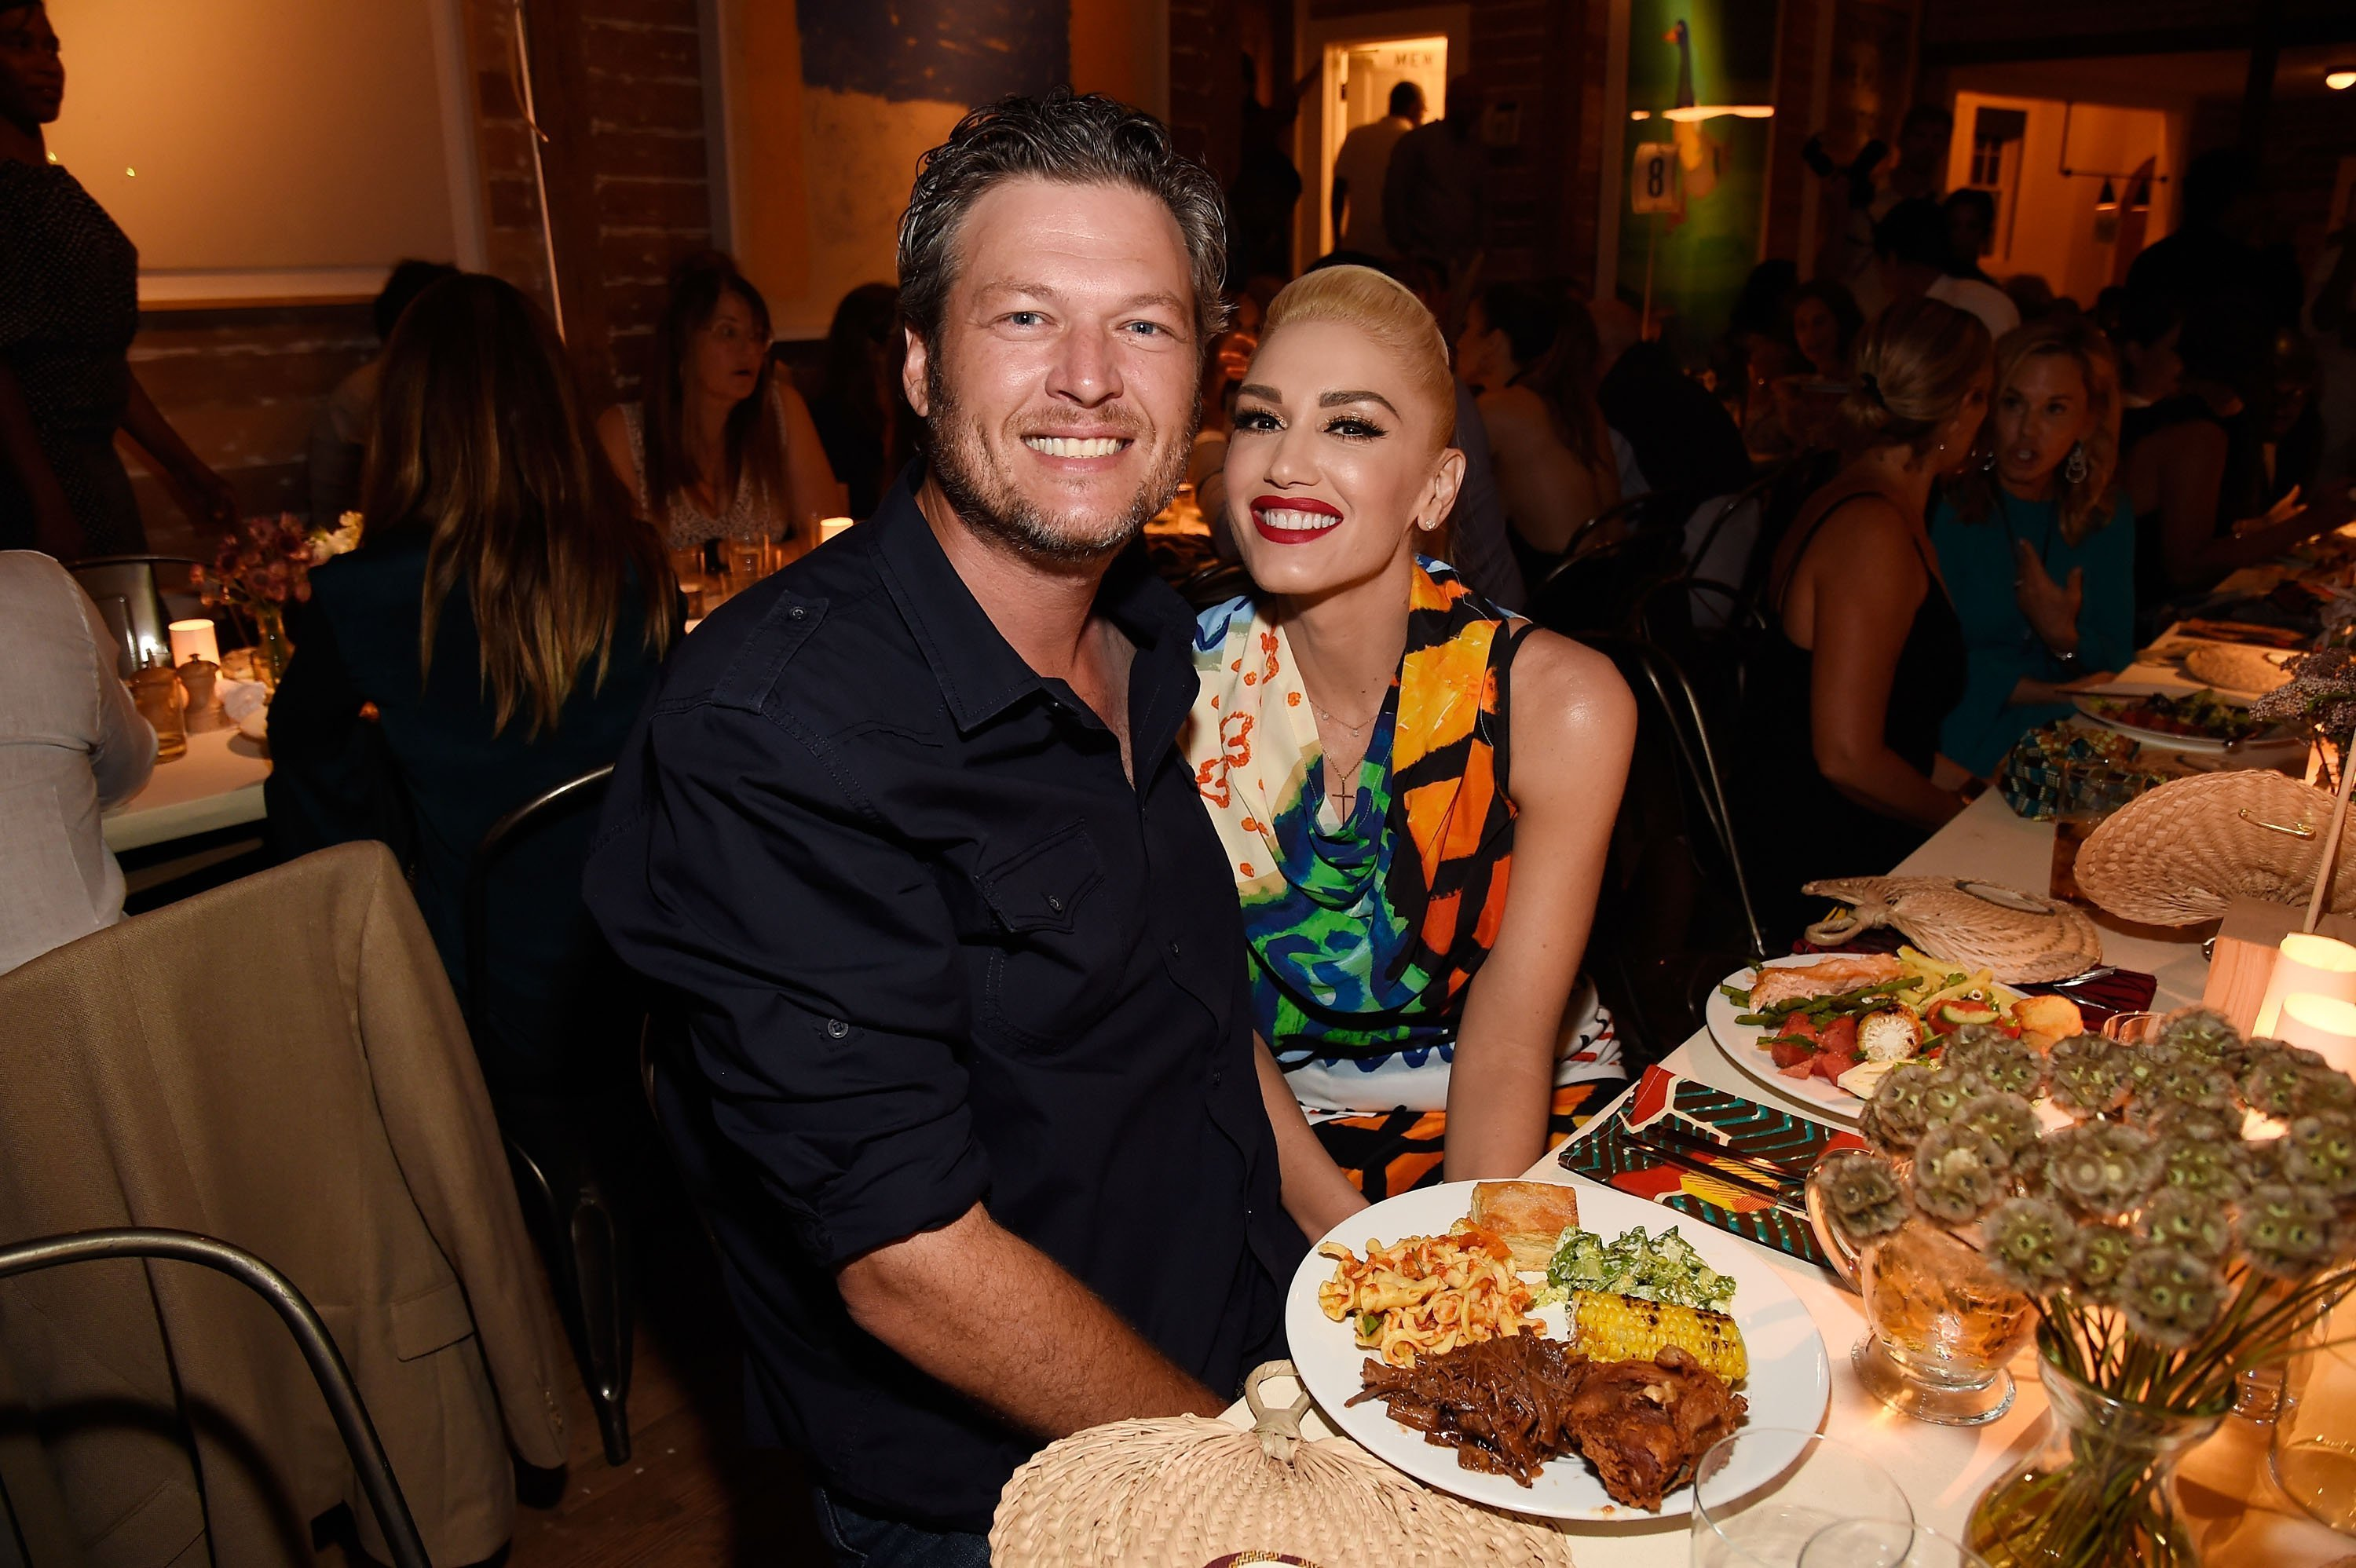 Blake Shelton and Gwen Stefani attend Apollo in the Hamptons in New York on August 20, 2016 | Photo: Getty Images